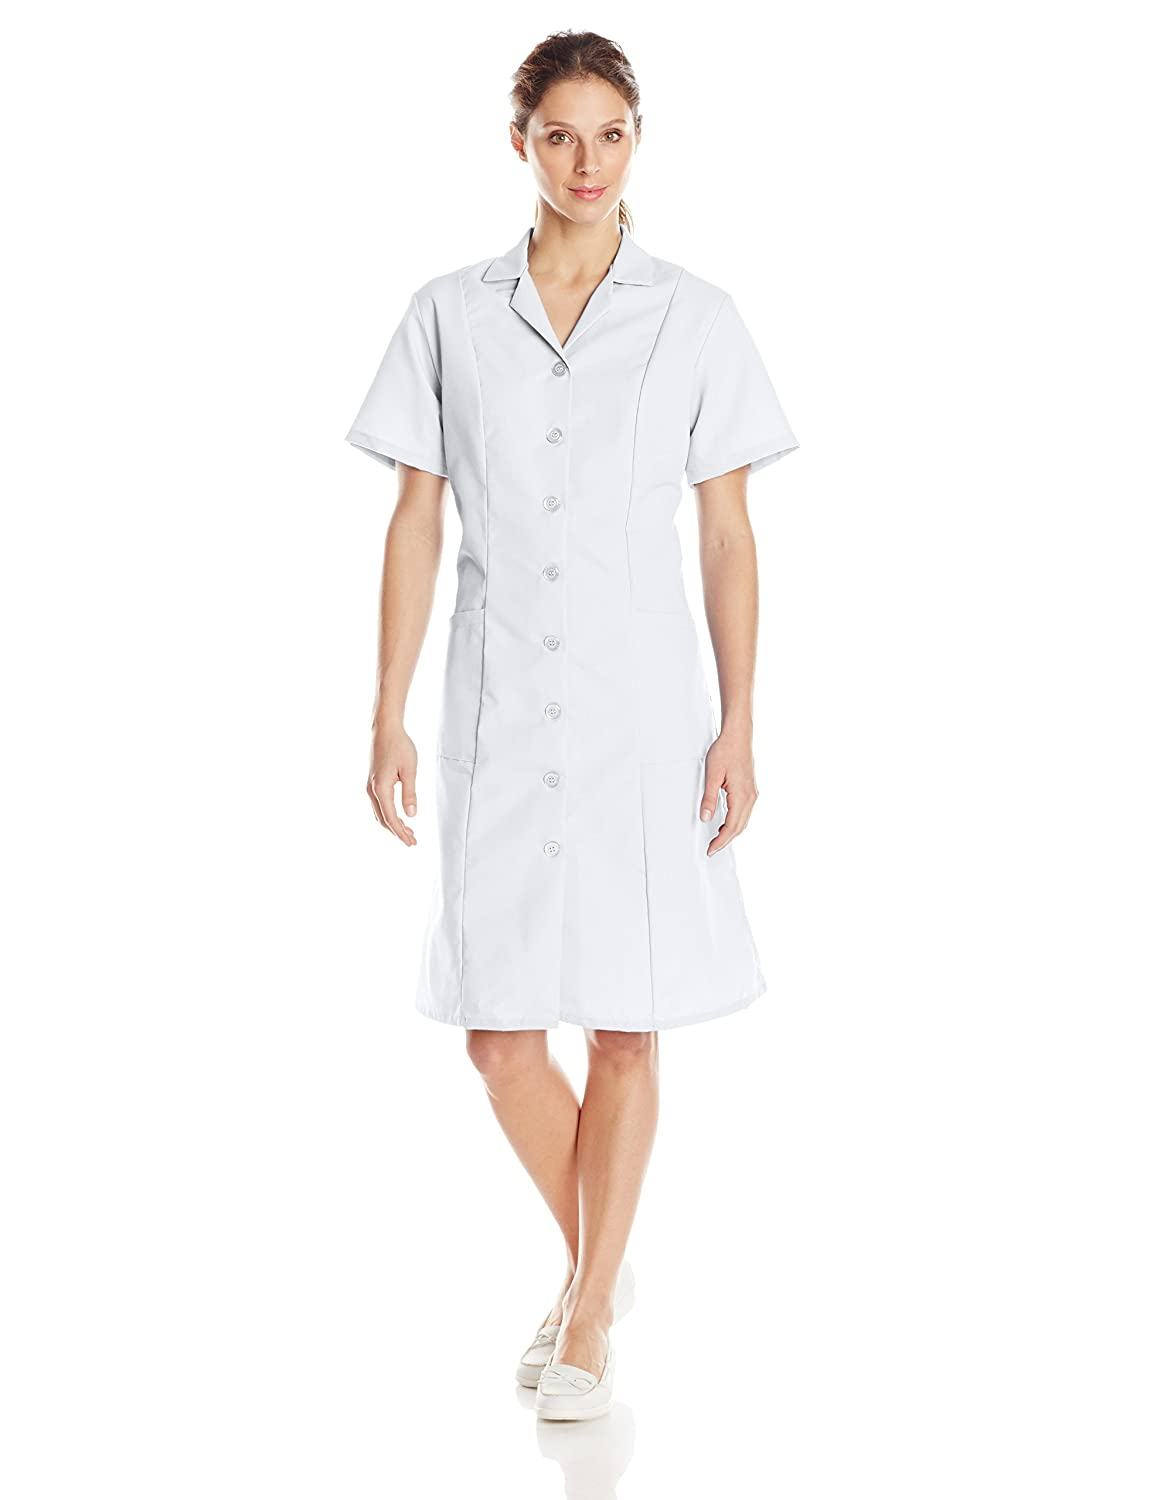 Red Kap Women's Short Sleeve Work Dress